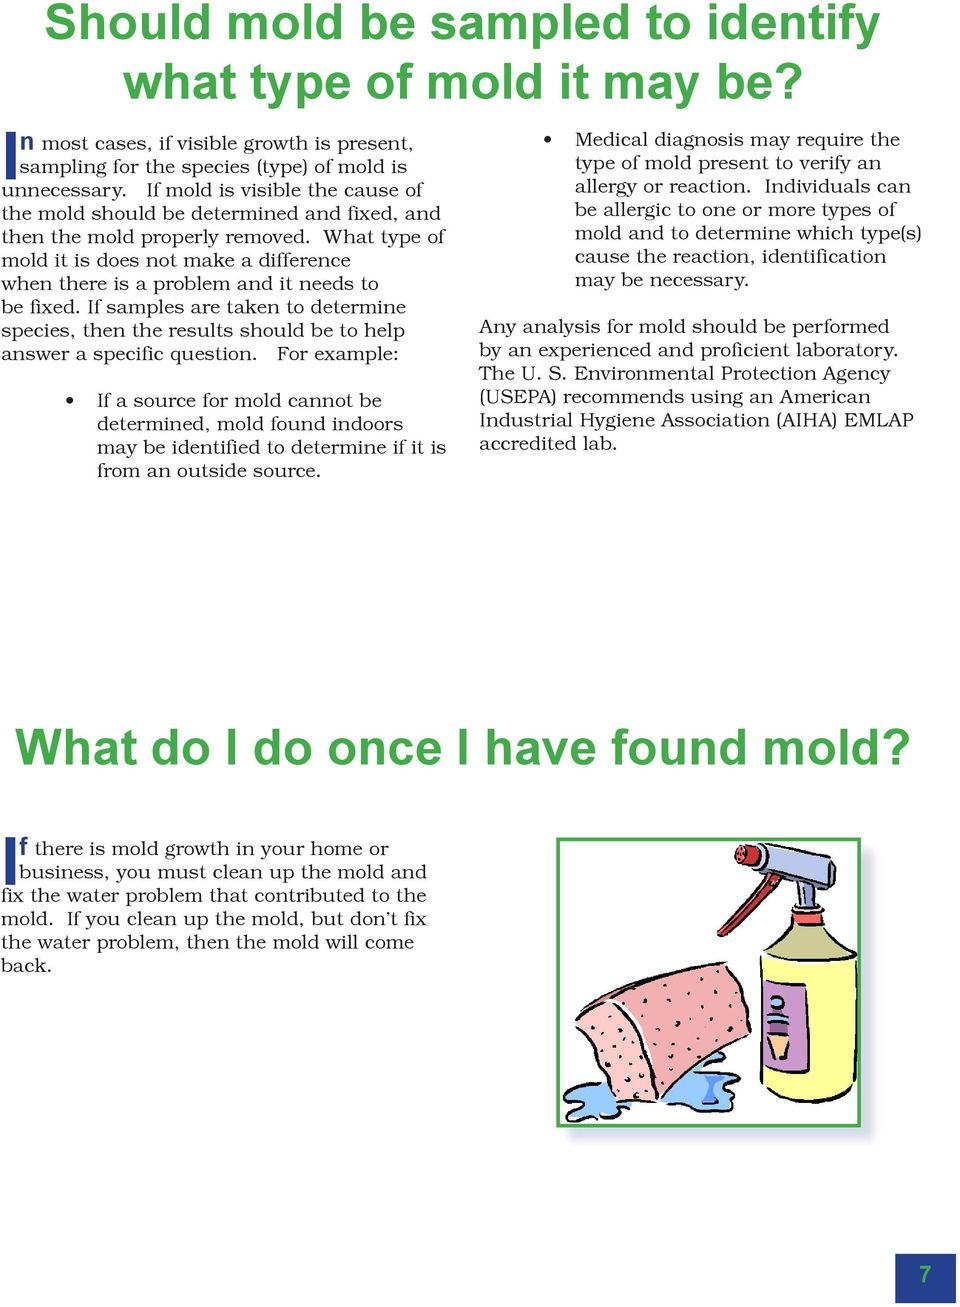 What type of mold it is does not make a difference when there is a problem and it needs to be fixed.